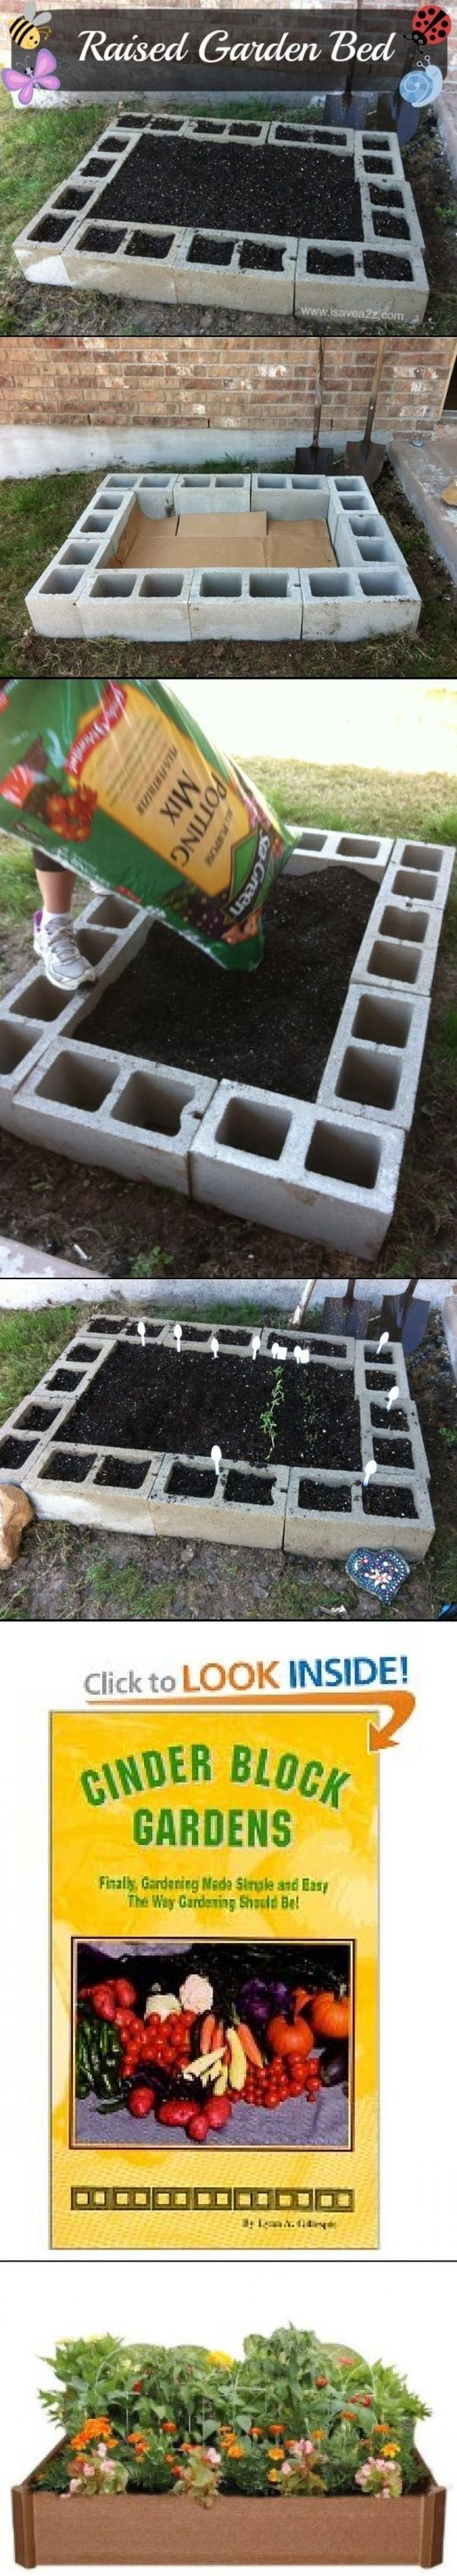 Raised Garden bed with cinder blocks- maybe a way to use the ones we already have?